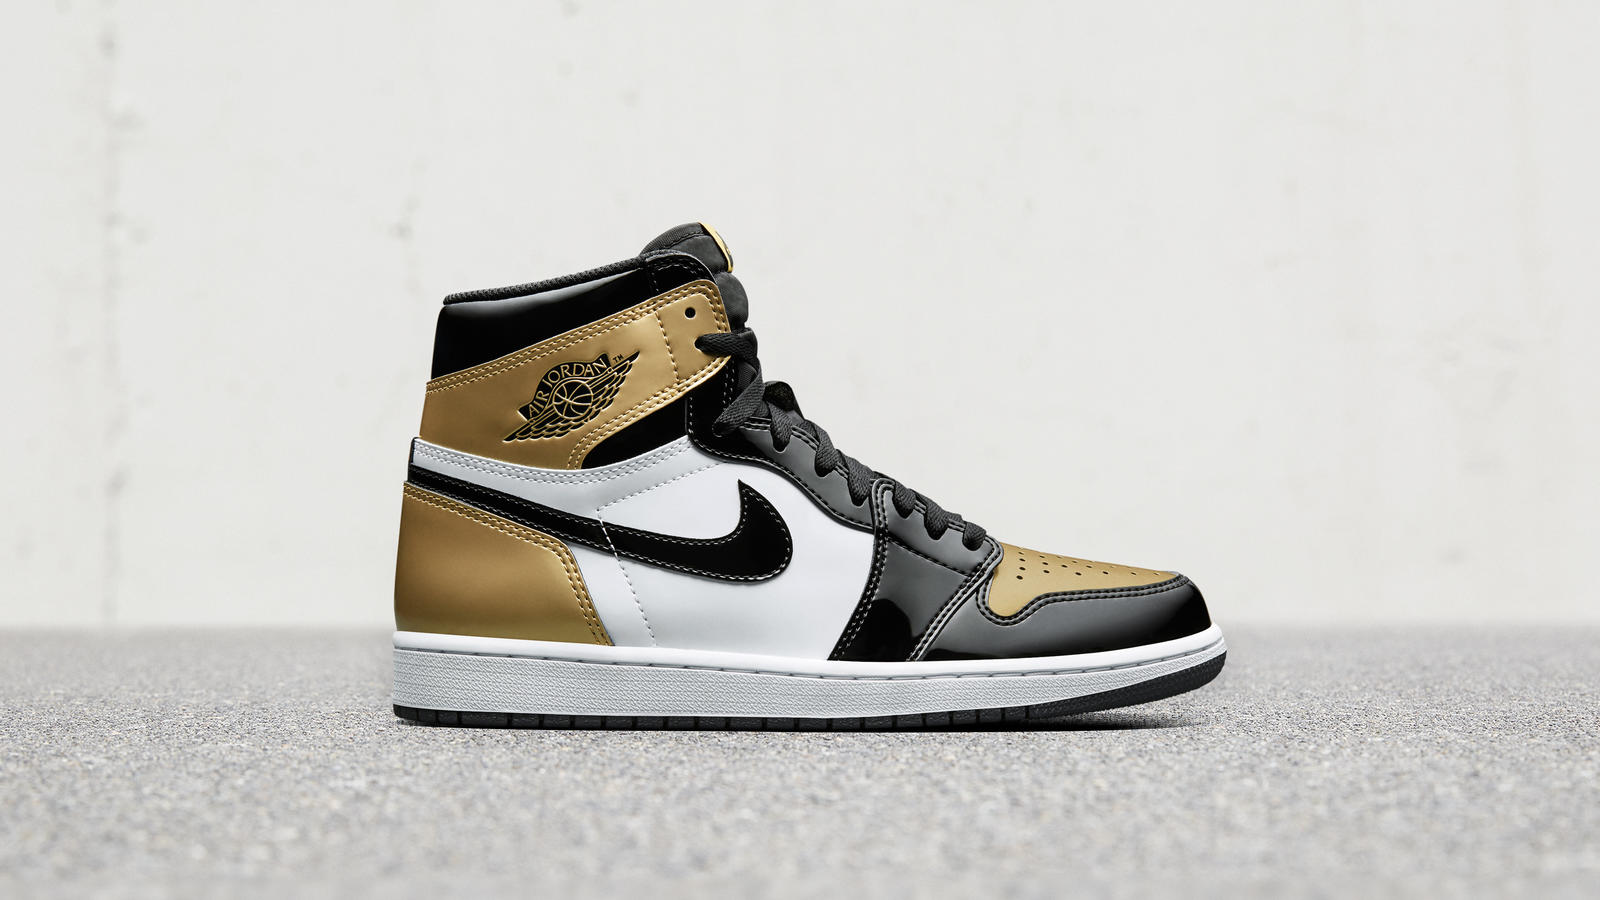 Gold jordan 1 top 3 04 hd 1600